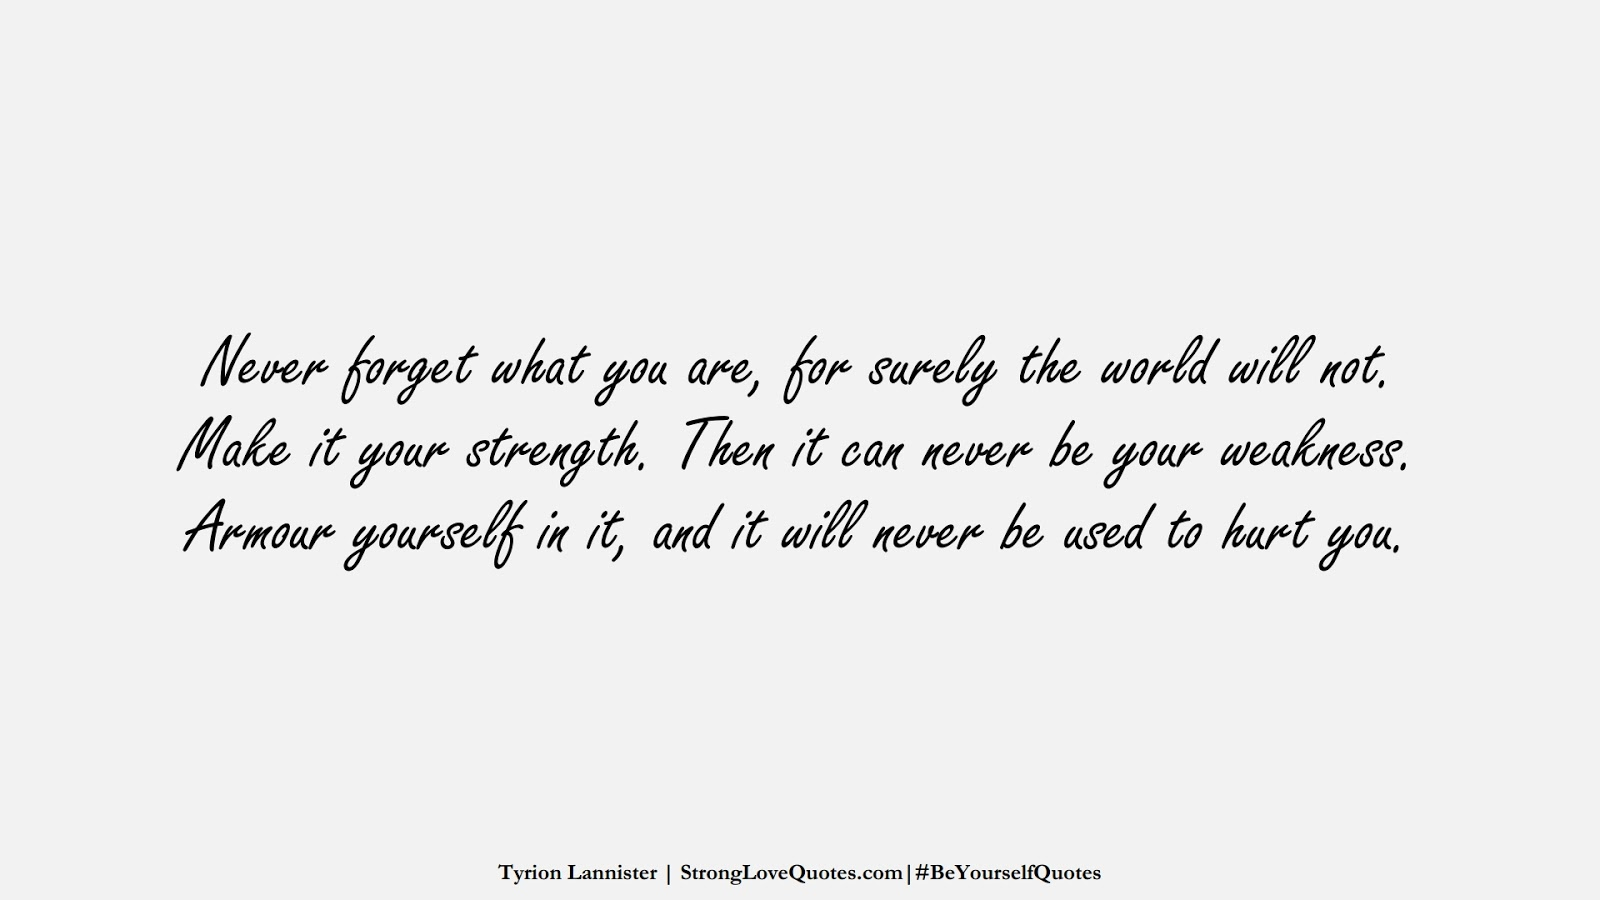 Never forget what you are, for surely the world will not. Make it your strength. Then it can never be your weakness. Armour yourself in it, and it will never be used to hurt you. (Tyrion Lannister);  #BeYourselfQuotes